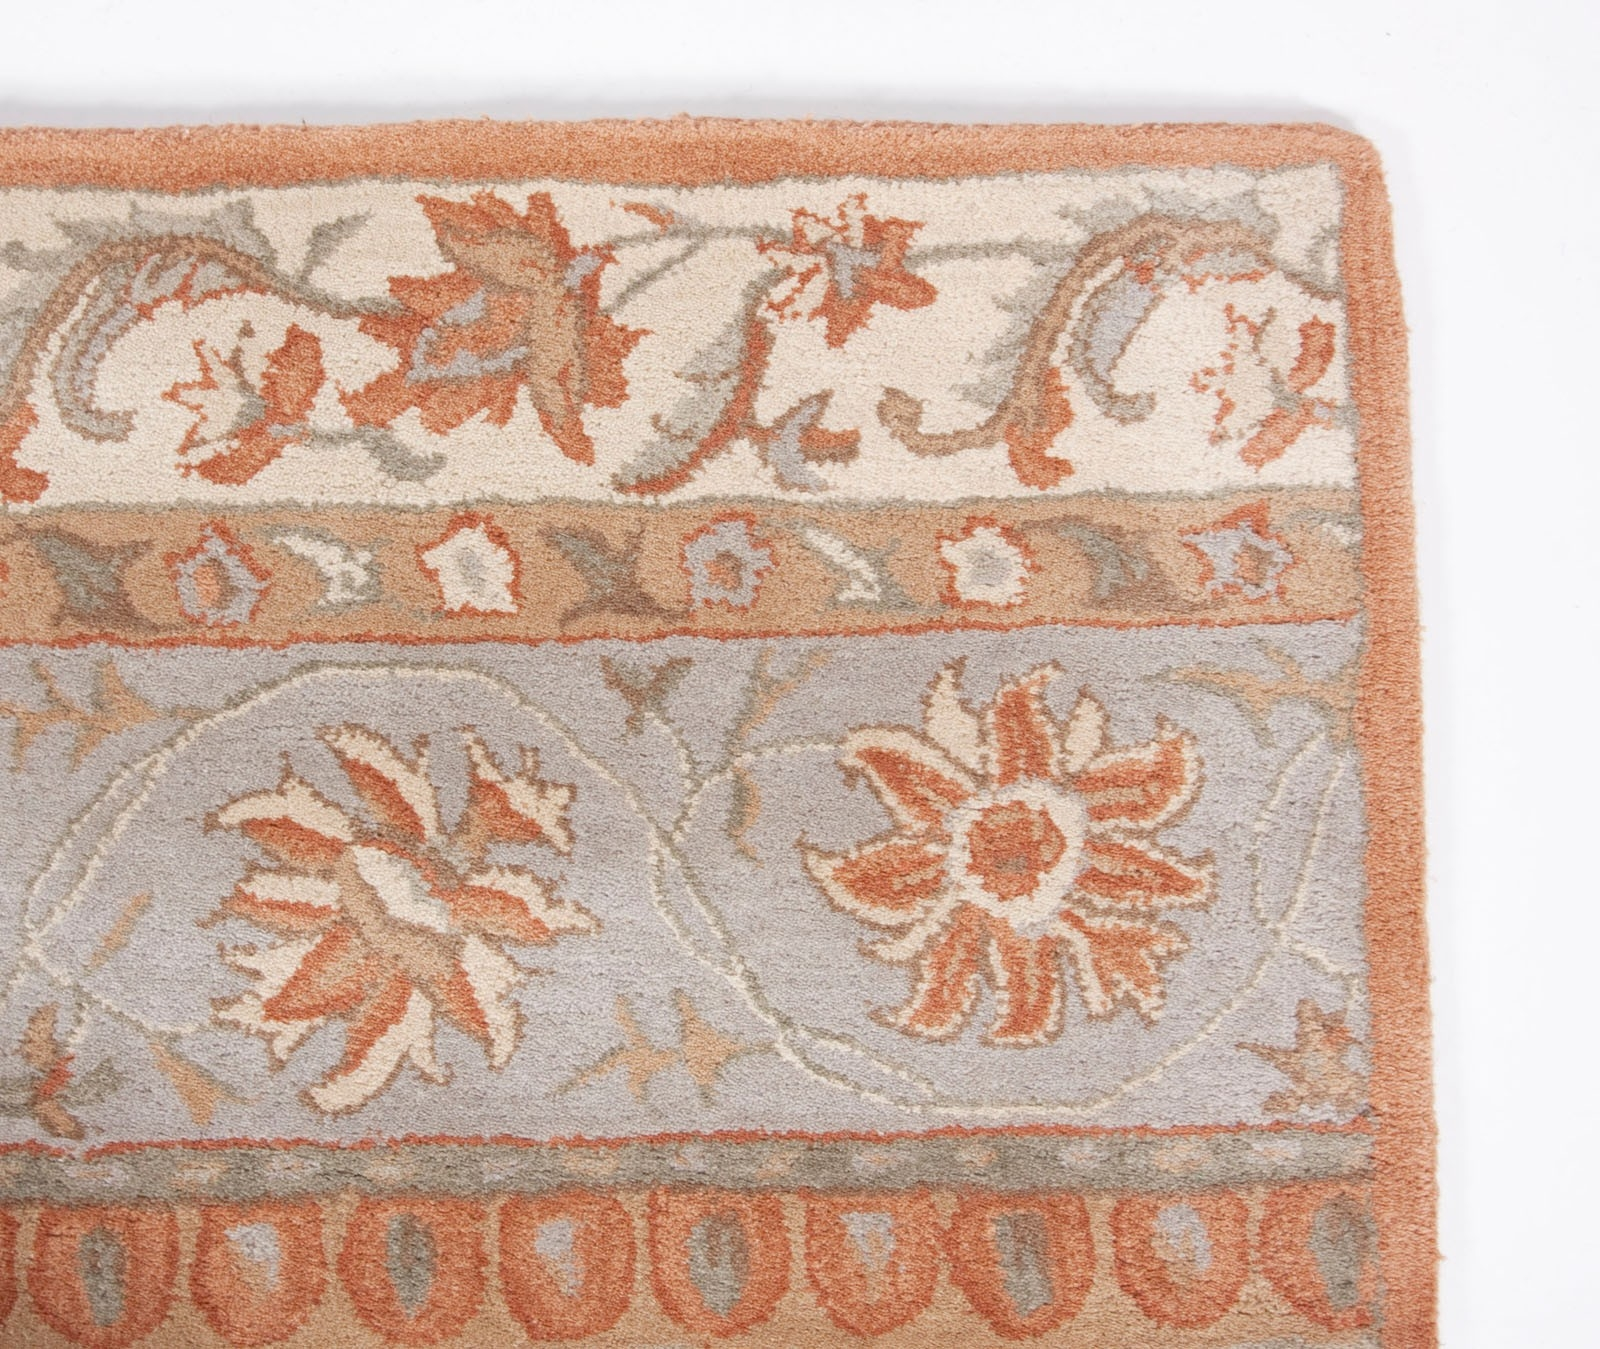 Traditional Royal Hand Tufted Wool Area Rug 5×8 Ivory Orange Blue Inside 5×8 Wool Area Rugs (#13 of 15)